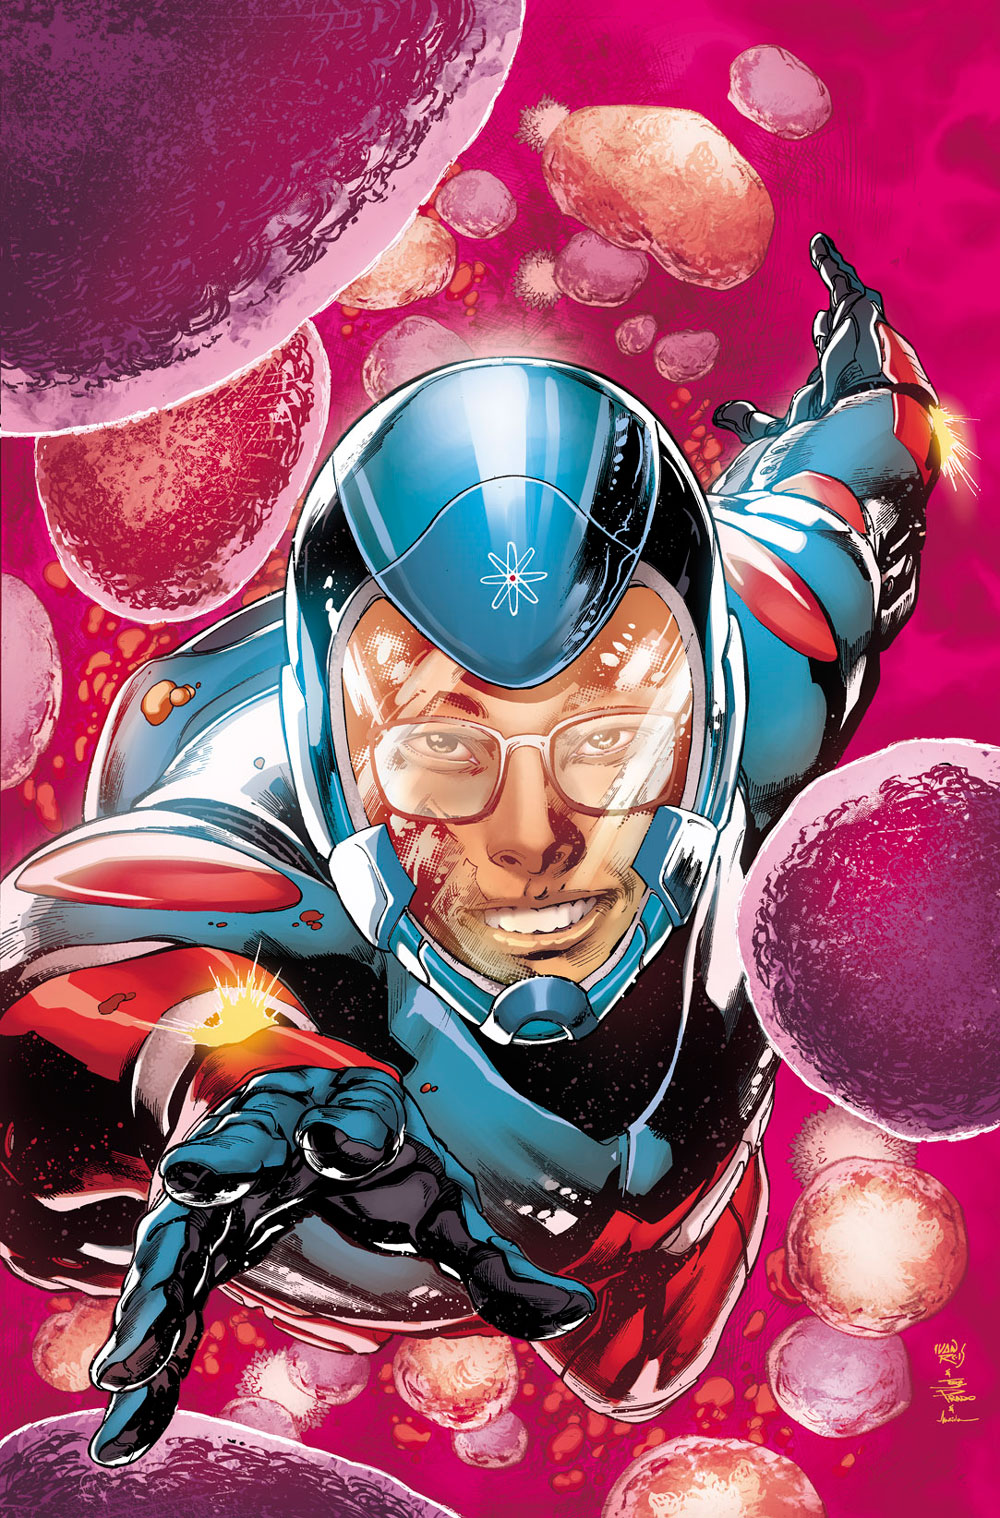 Justice League of America: The Atom #1